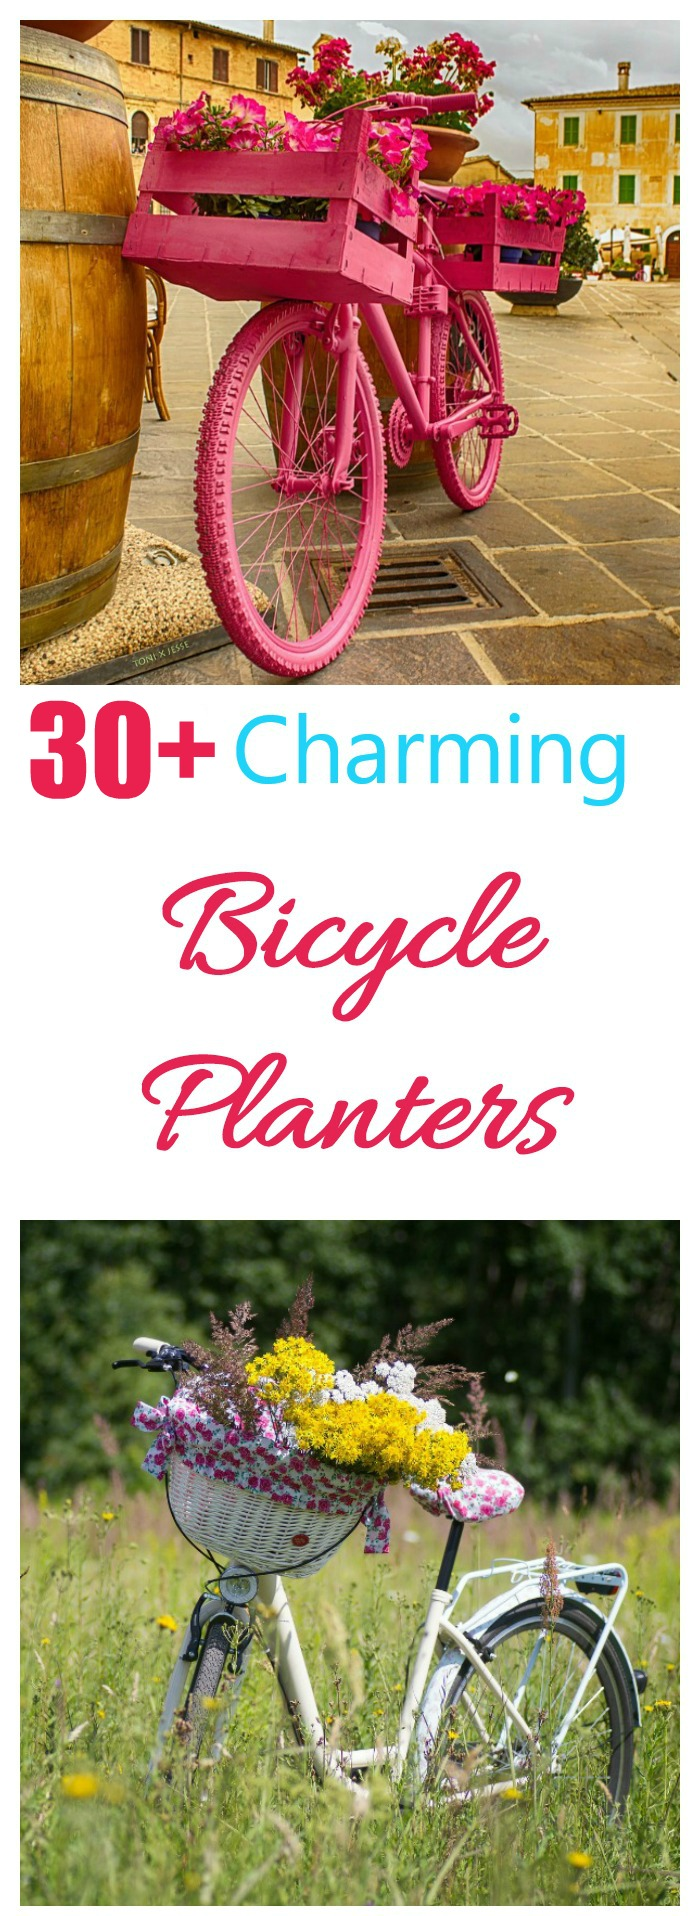 These creative bicycle planters show over 30 different ways to use a bicycle as a focal point in your garden